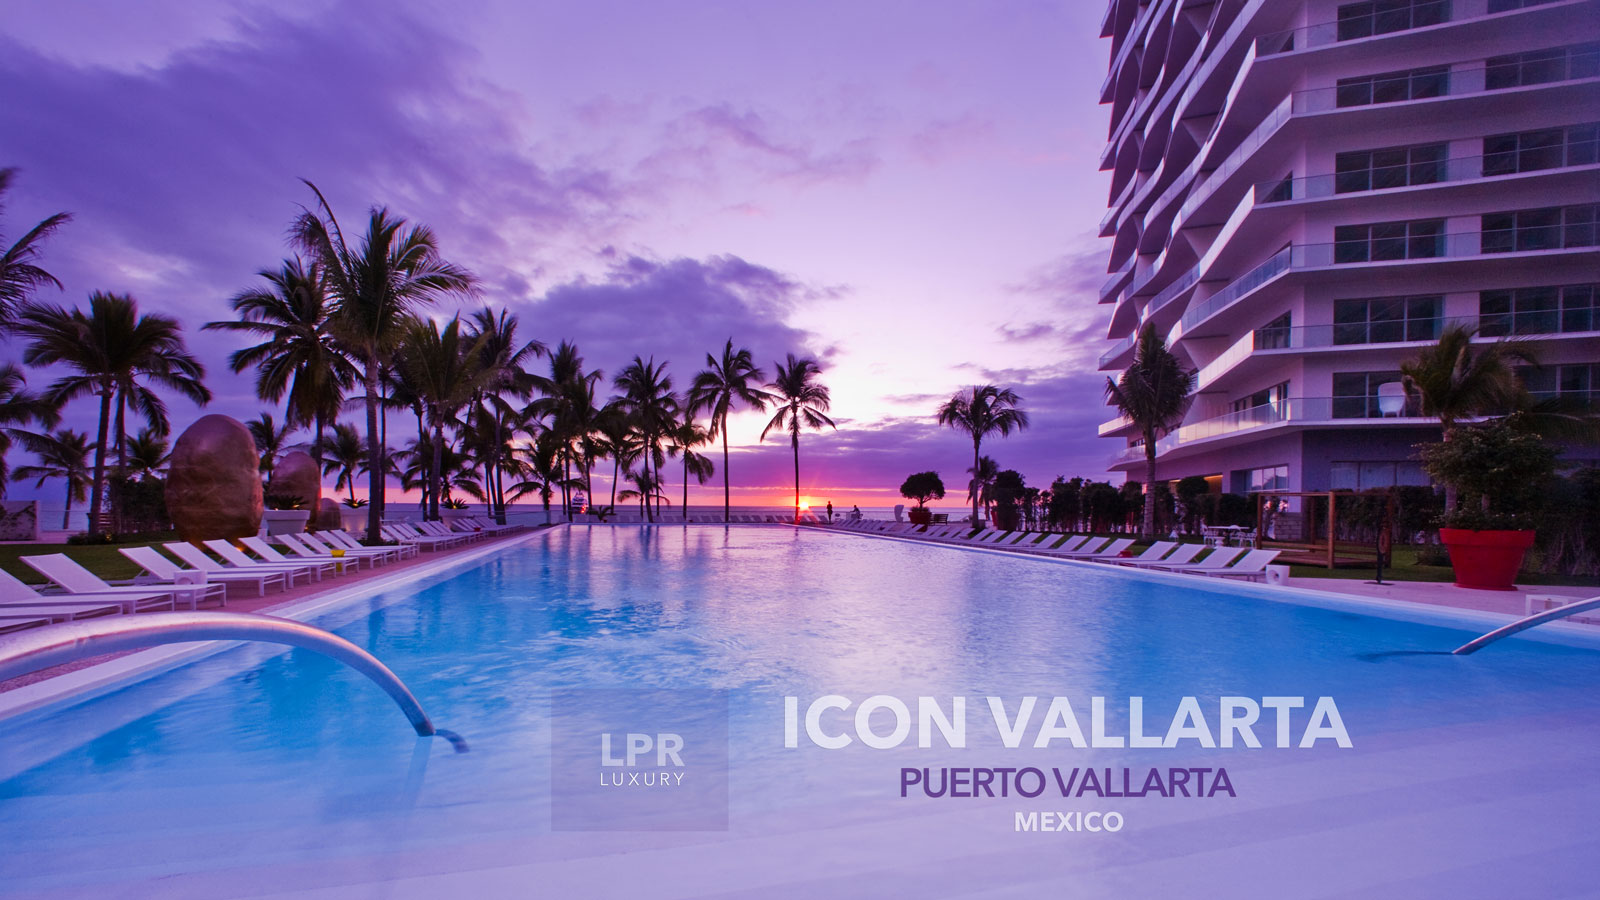 Icon Valarta - Puerto Vallarta Luxury beachfront condos for sale and rent - Hotel Zone Puerto Vallarta real estate